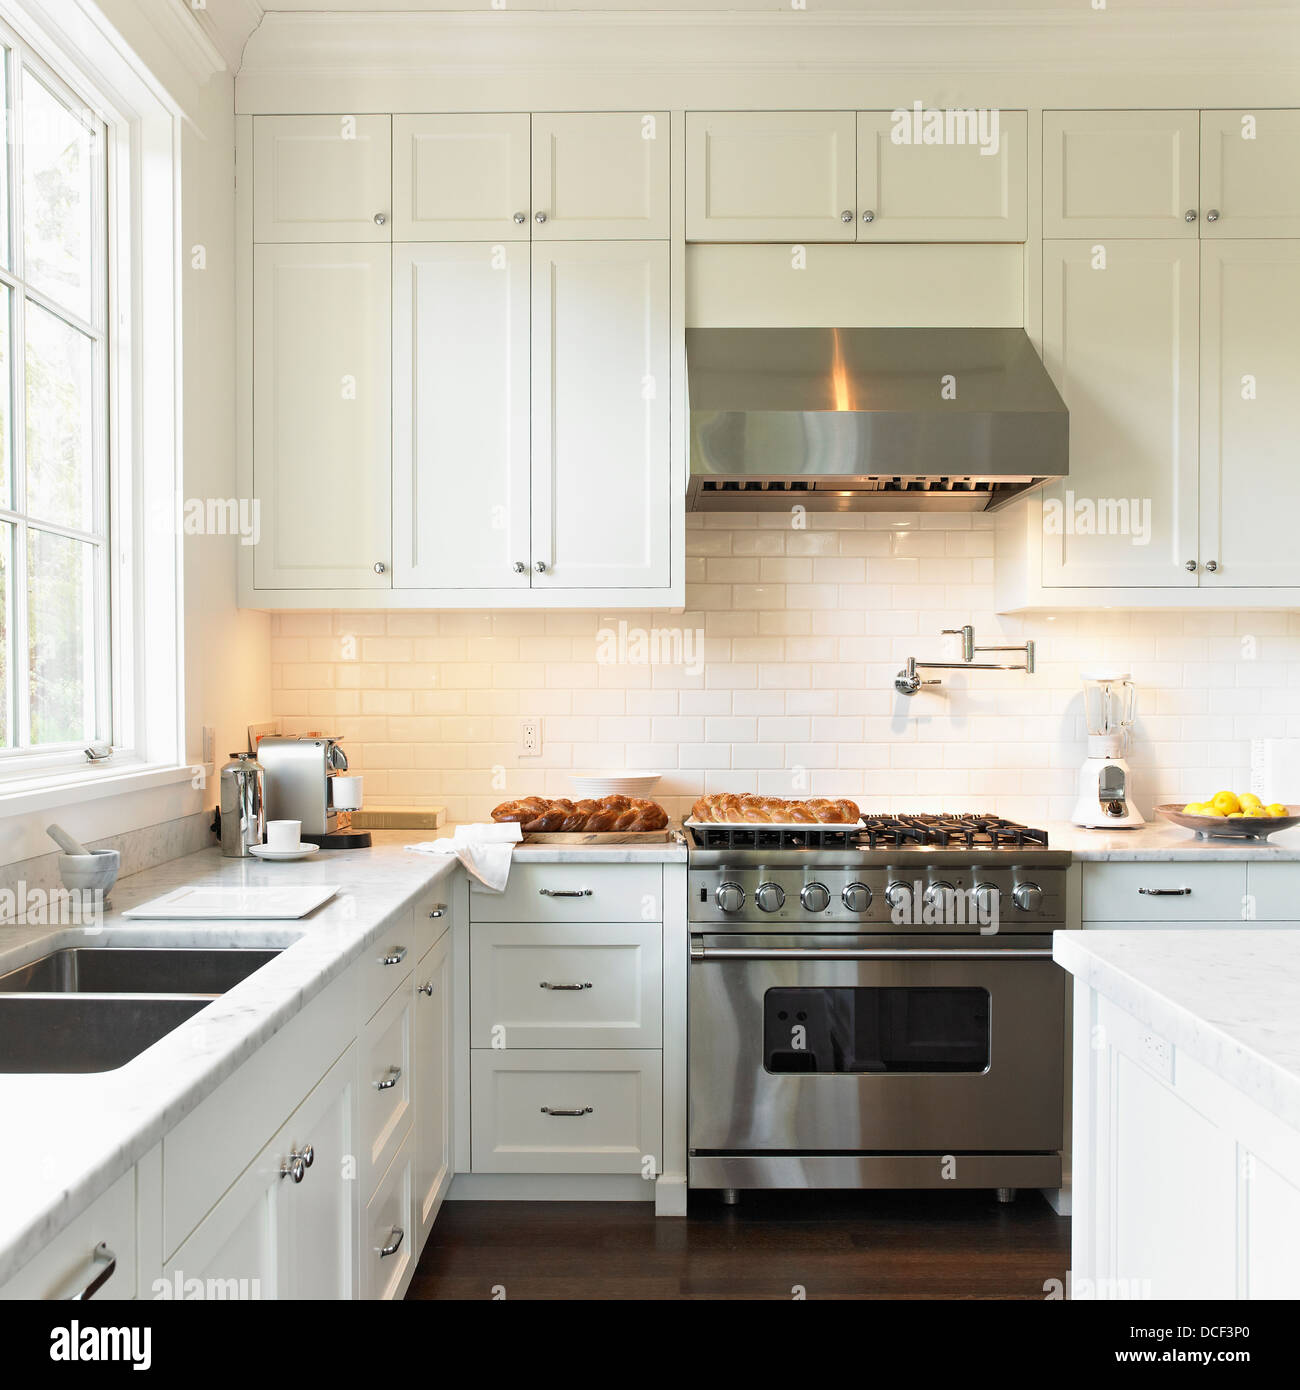 Cream Kitchen With High-end Viking Stove And Range Hood